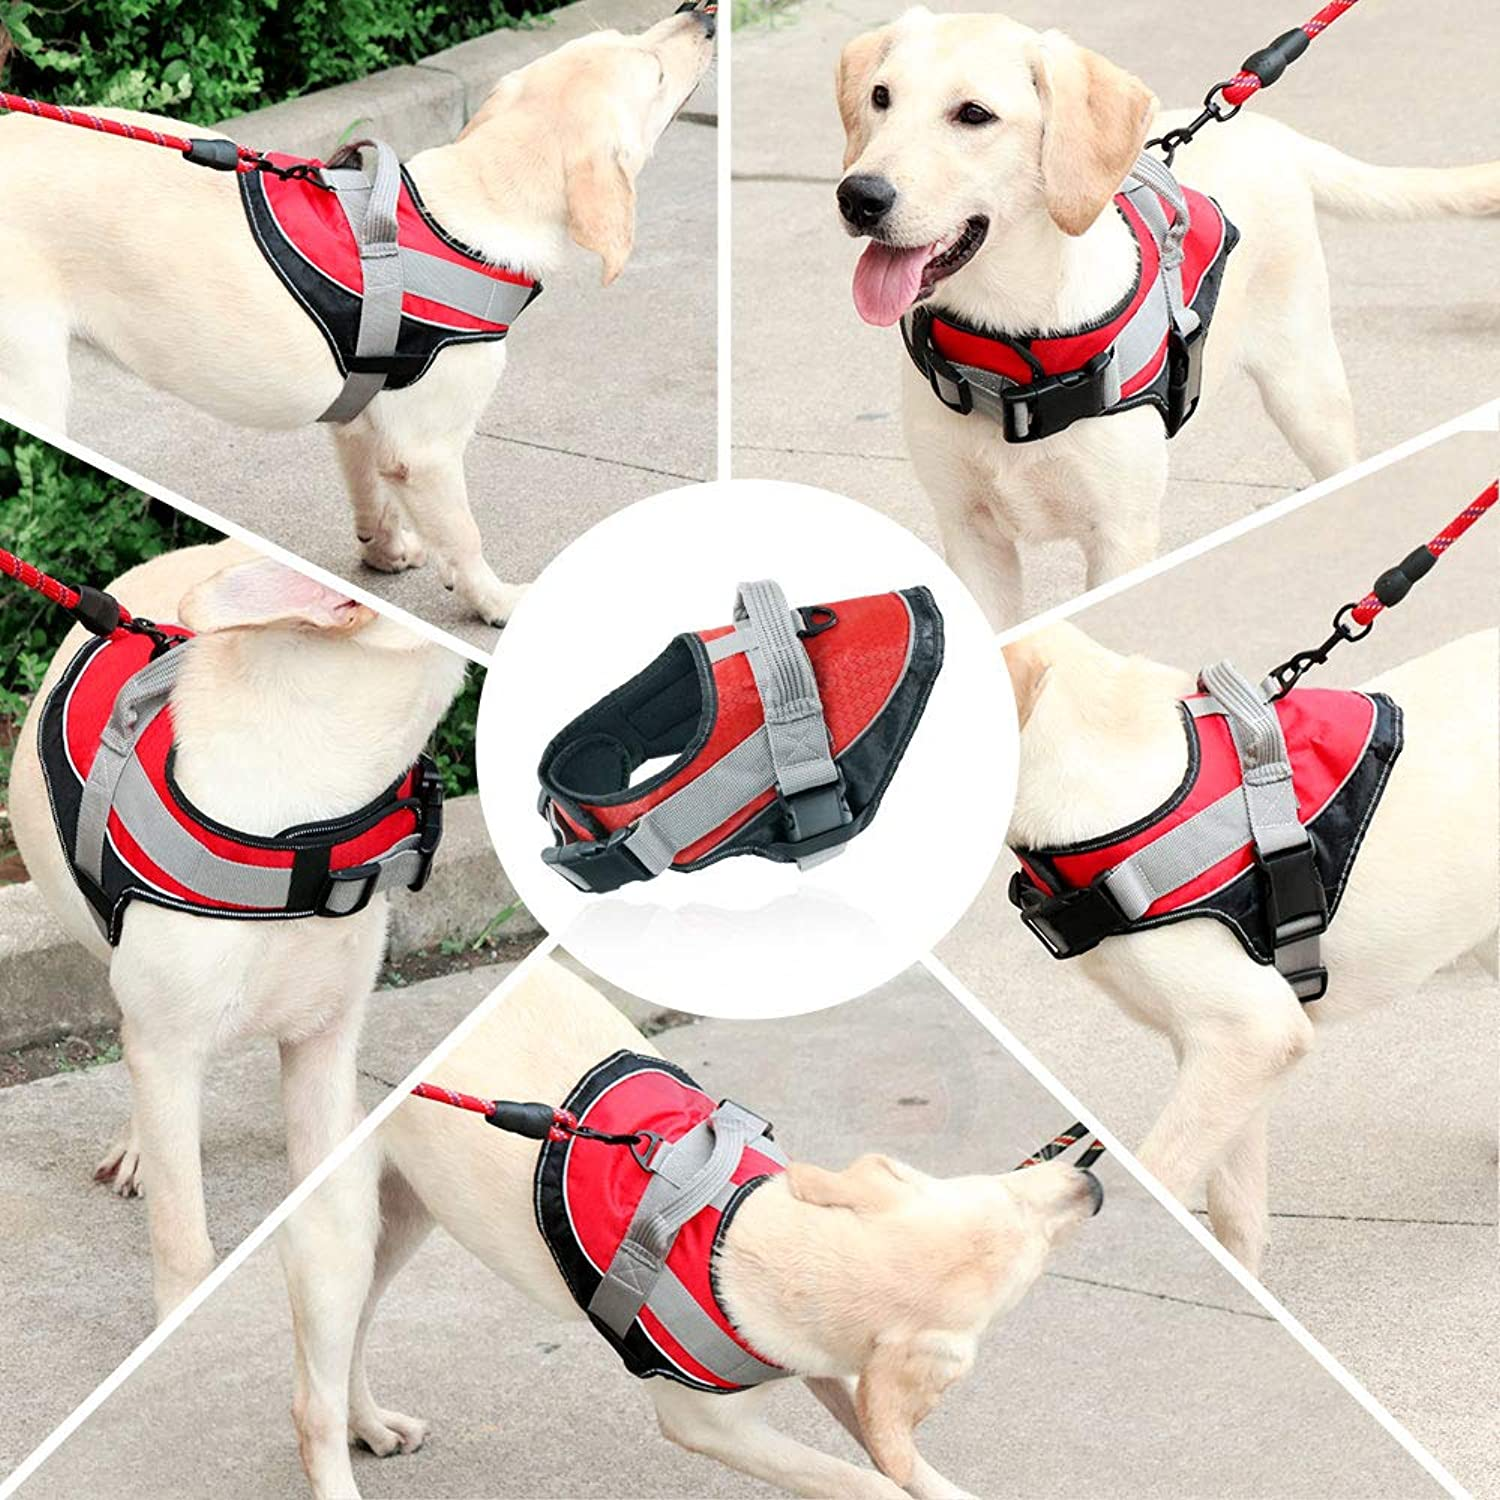 KITAINE Dog Harness No Pull for Small Medium Large XL Dogs, Heavy Duty Soft Padded Adjustable Dog Vest Harness Reflective Comfortable Control for Pet Training Walking Harnesses with Handle (S, Red)